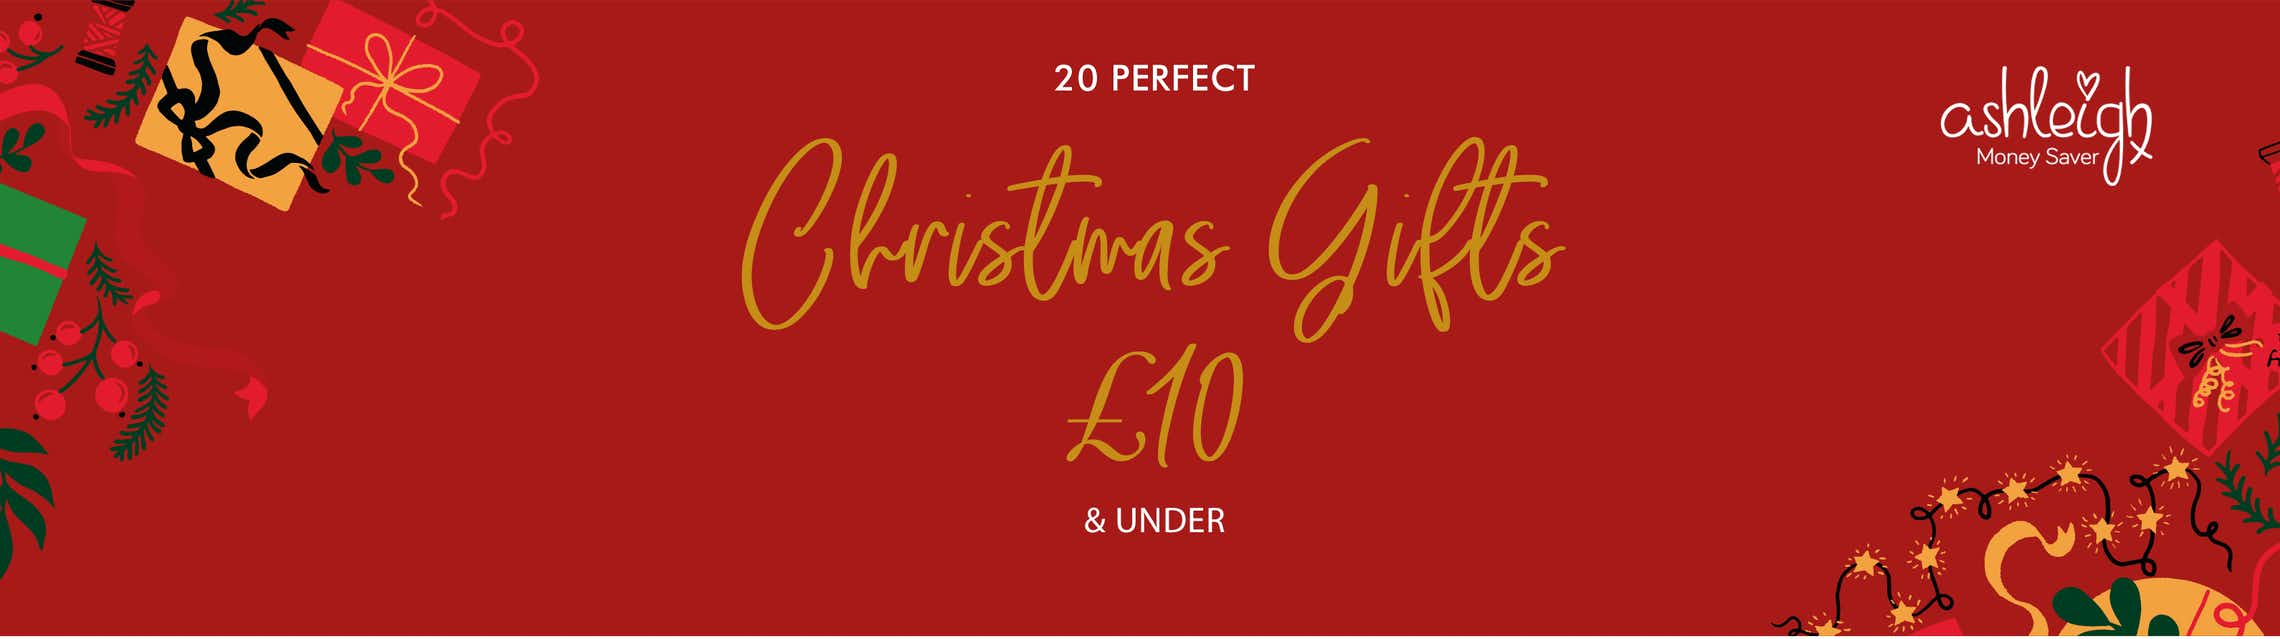 Stocking Fillers & Secret Santa Ideas